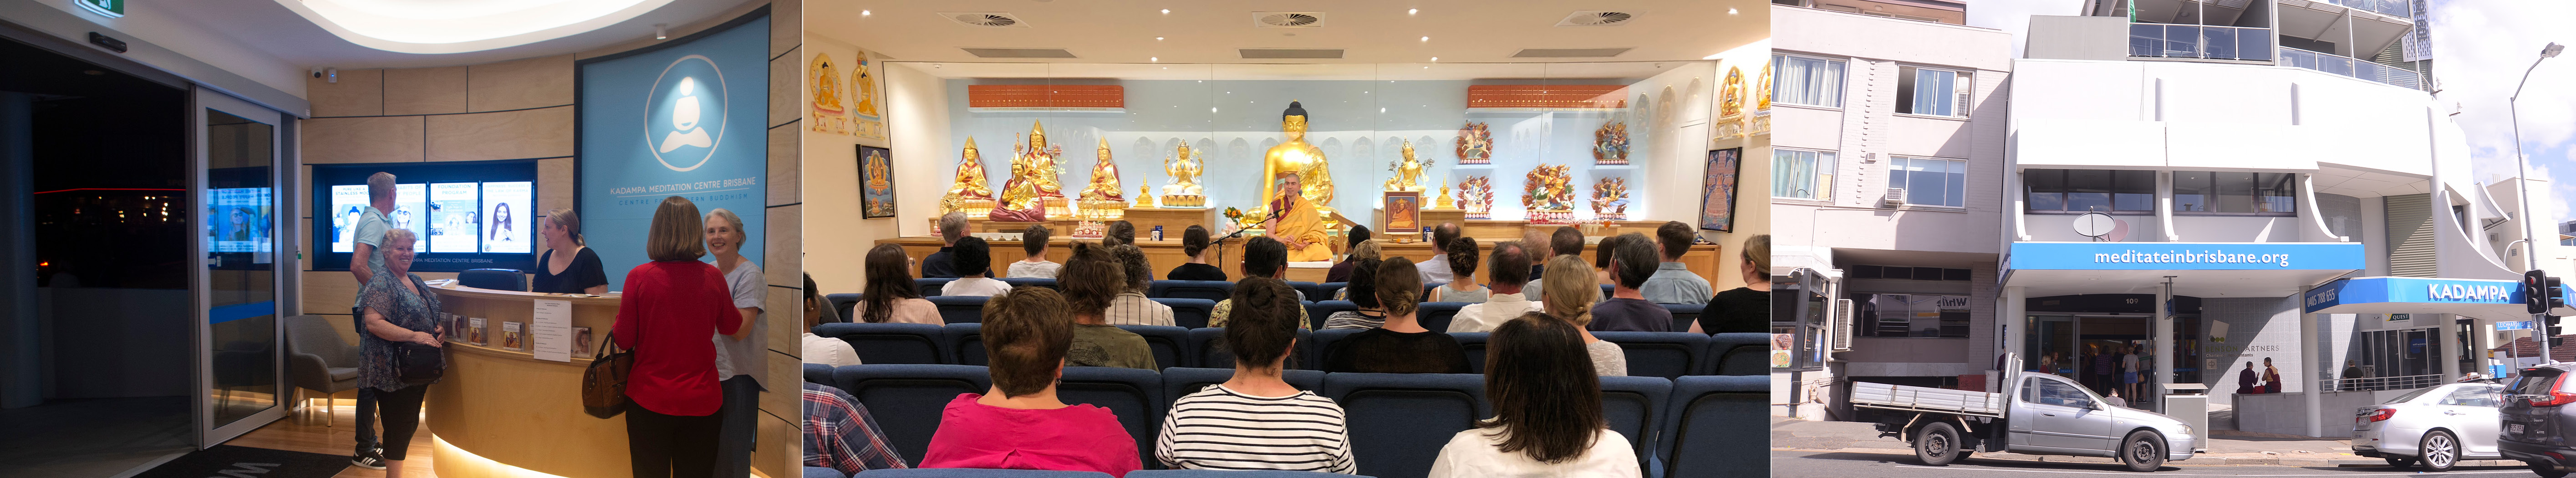 Inside Kadampa Meditation Centre Brisbane